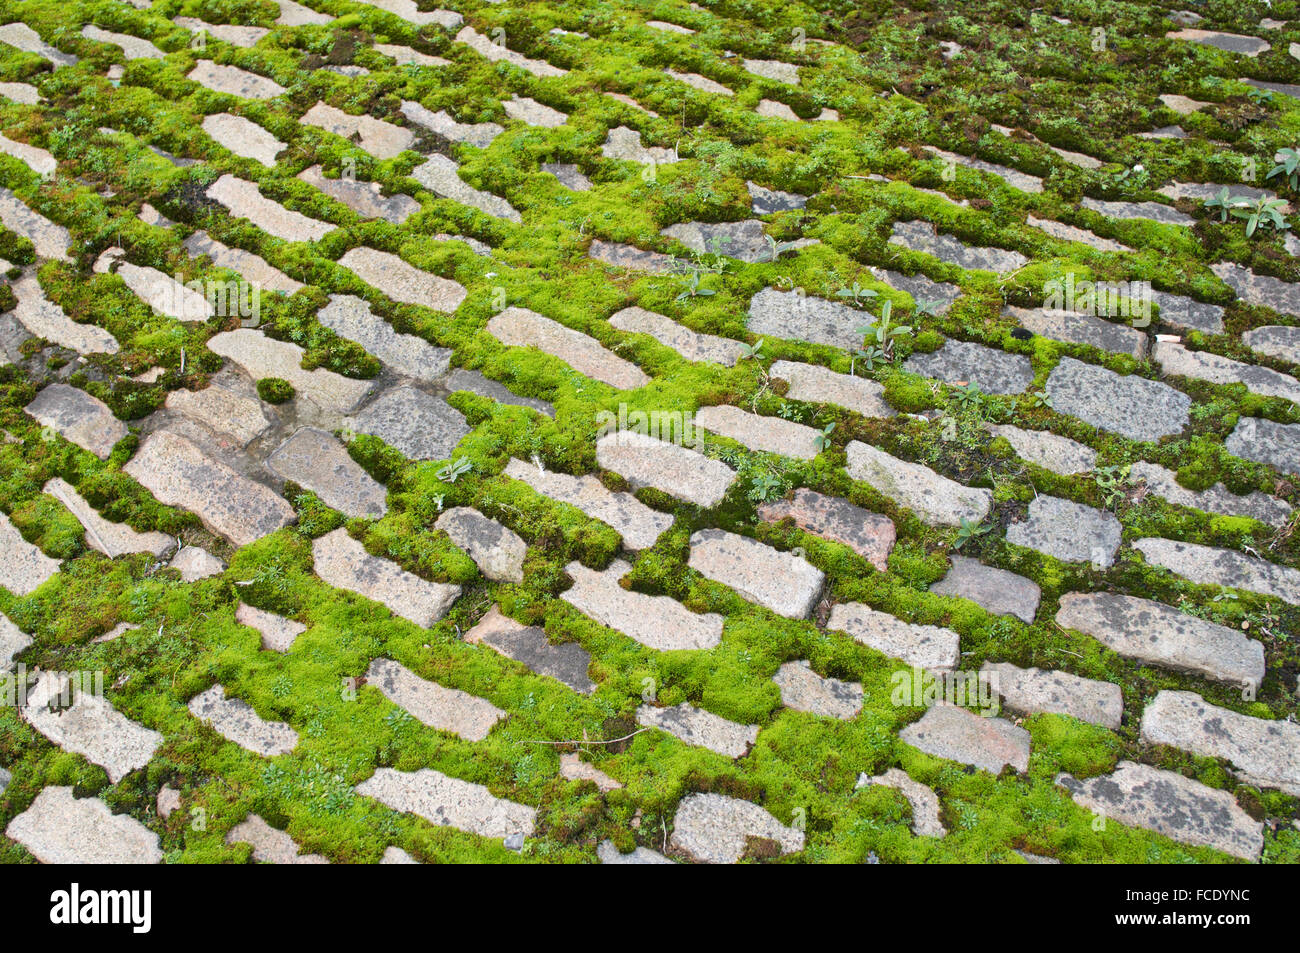 moss-growing-between-cobbles-newcastle-upon-tyne-north-east-england-FCDYNC.jpg